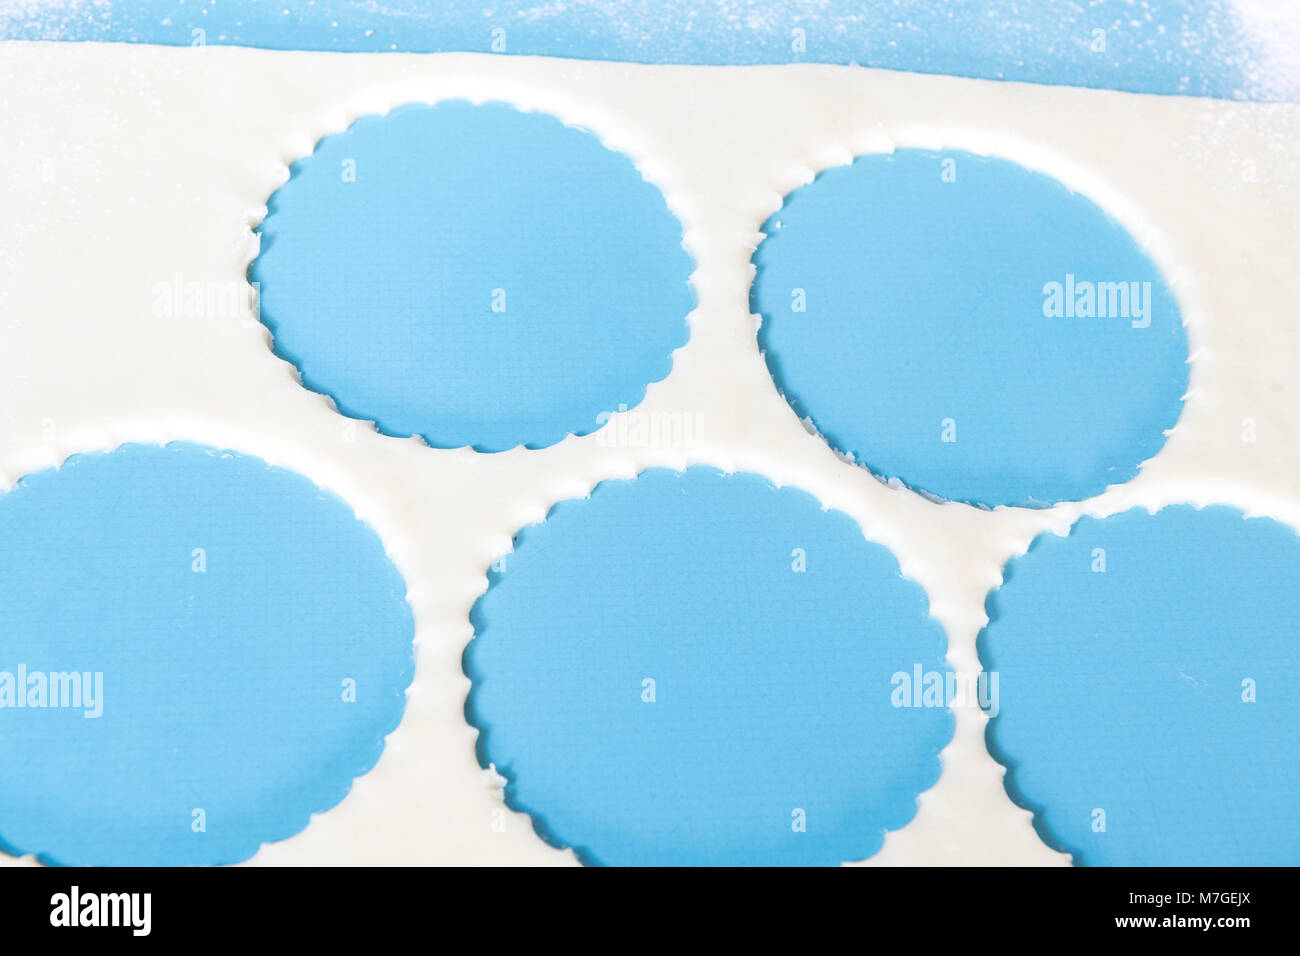 Pastry with holes home baking flour on a blue formica worktop. - Stock Image